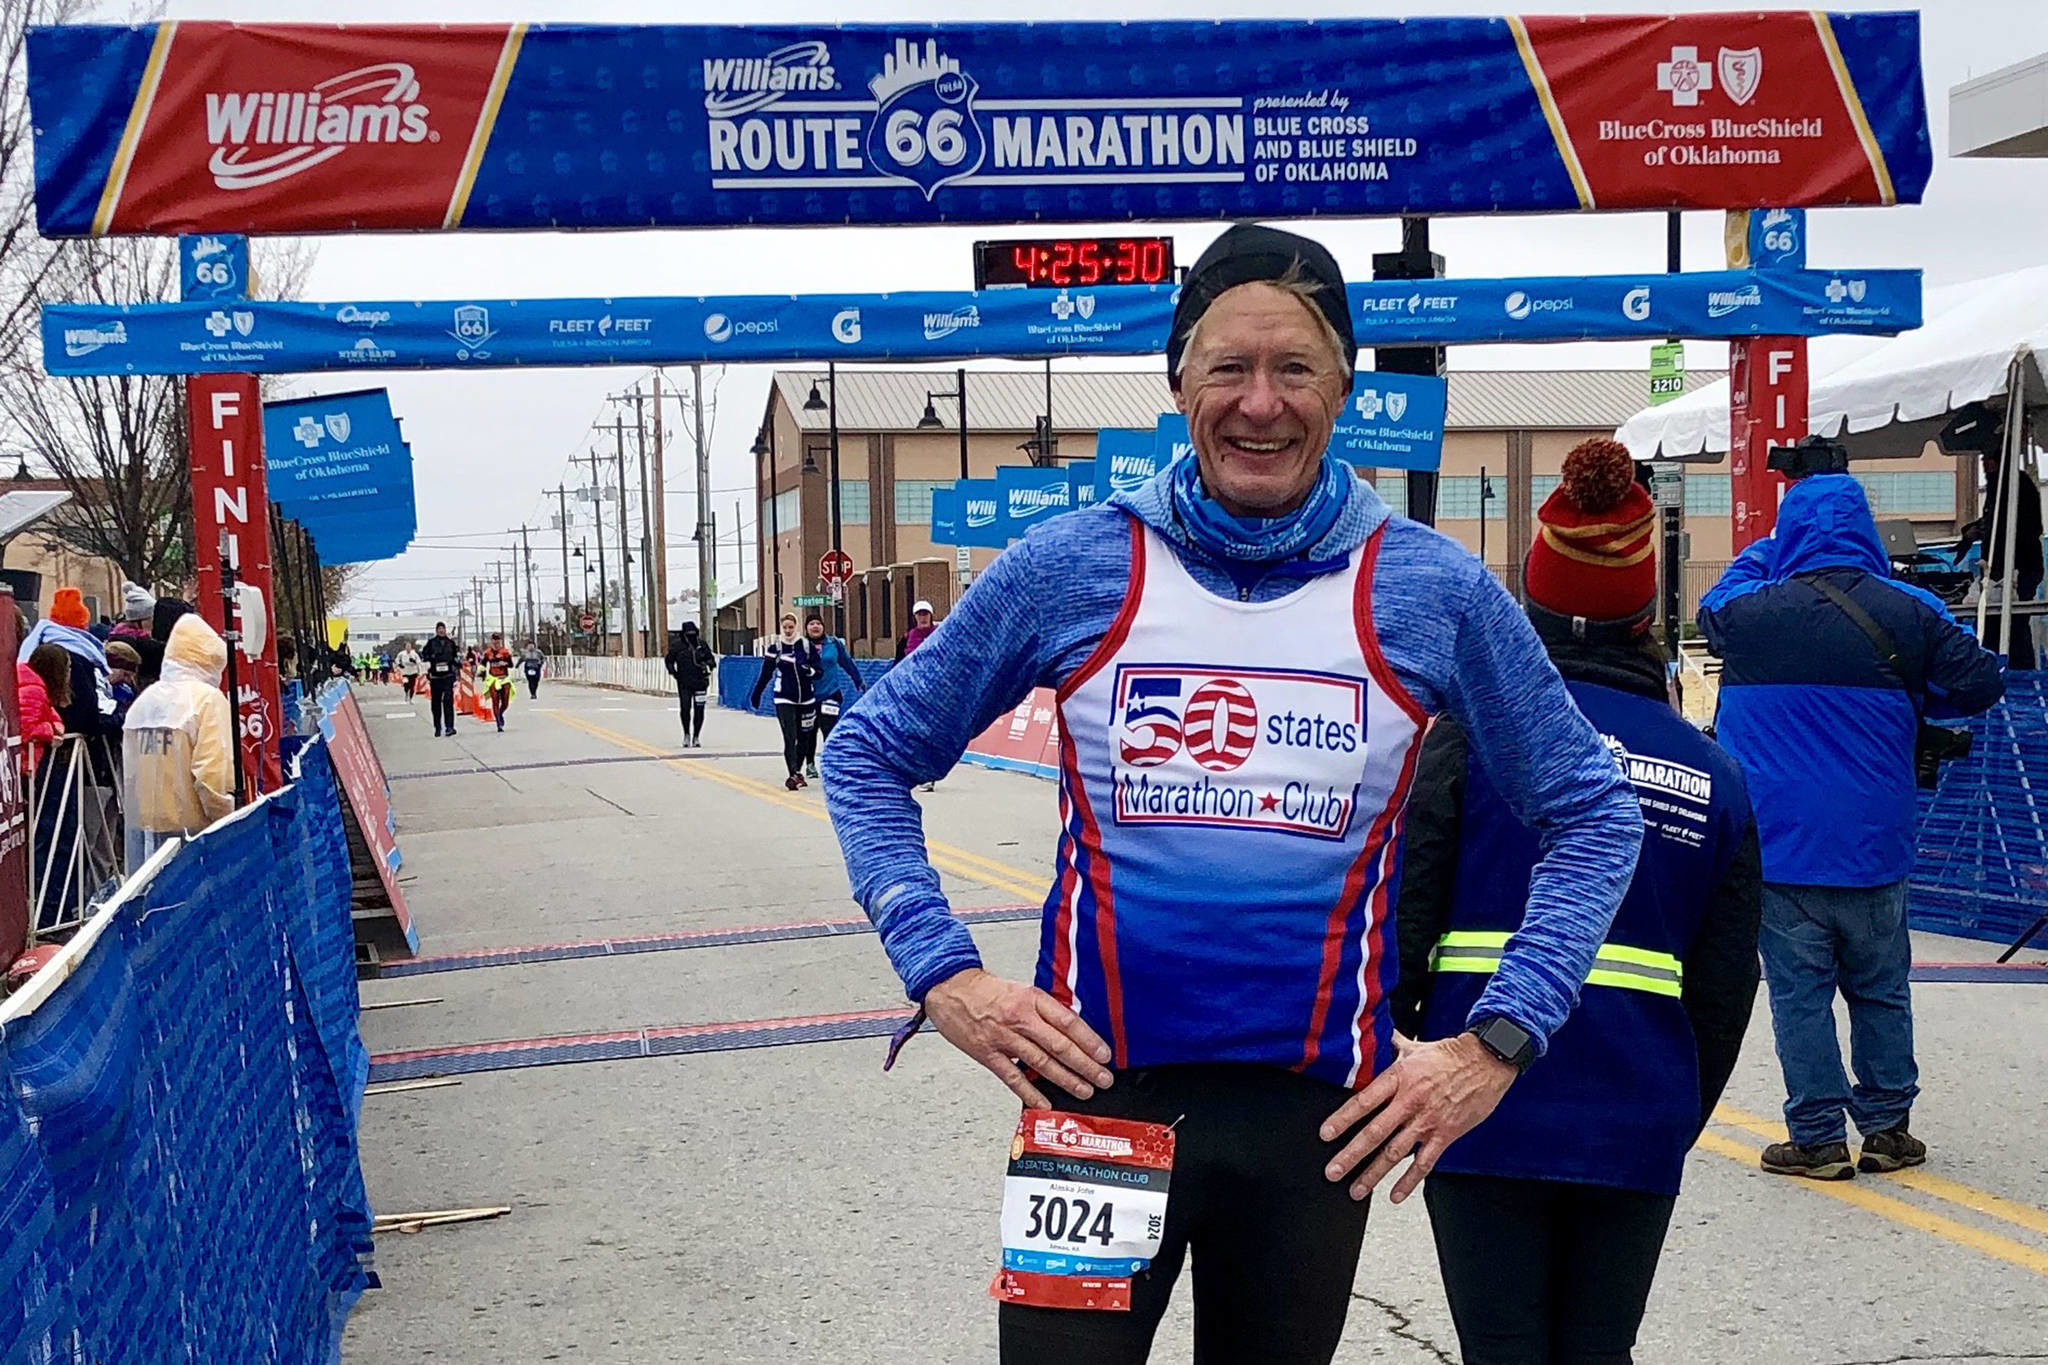 John Kern finished the Williams Route 66 Marathon this week, he completed his goal of running a marathon in all 50 states